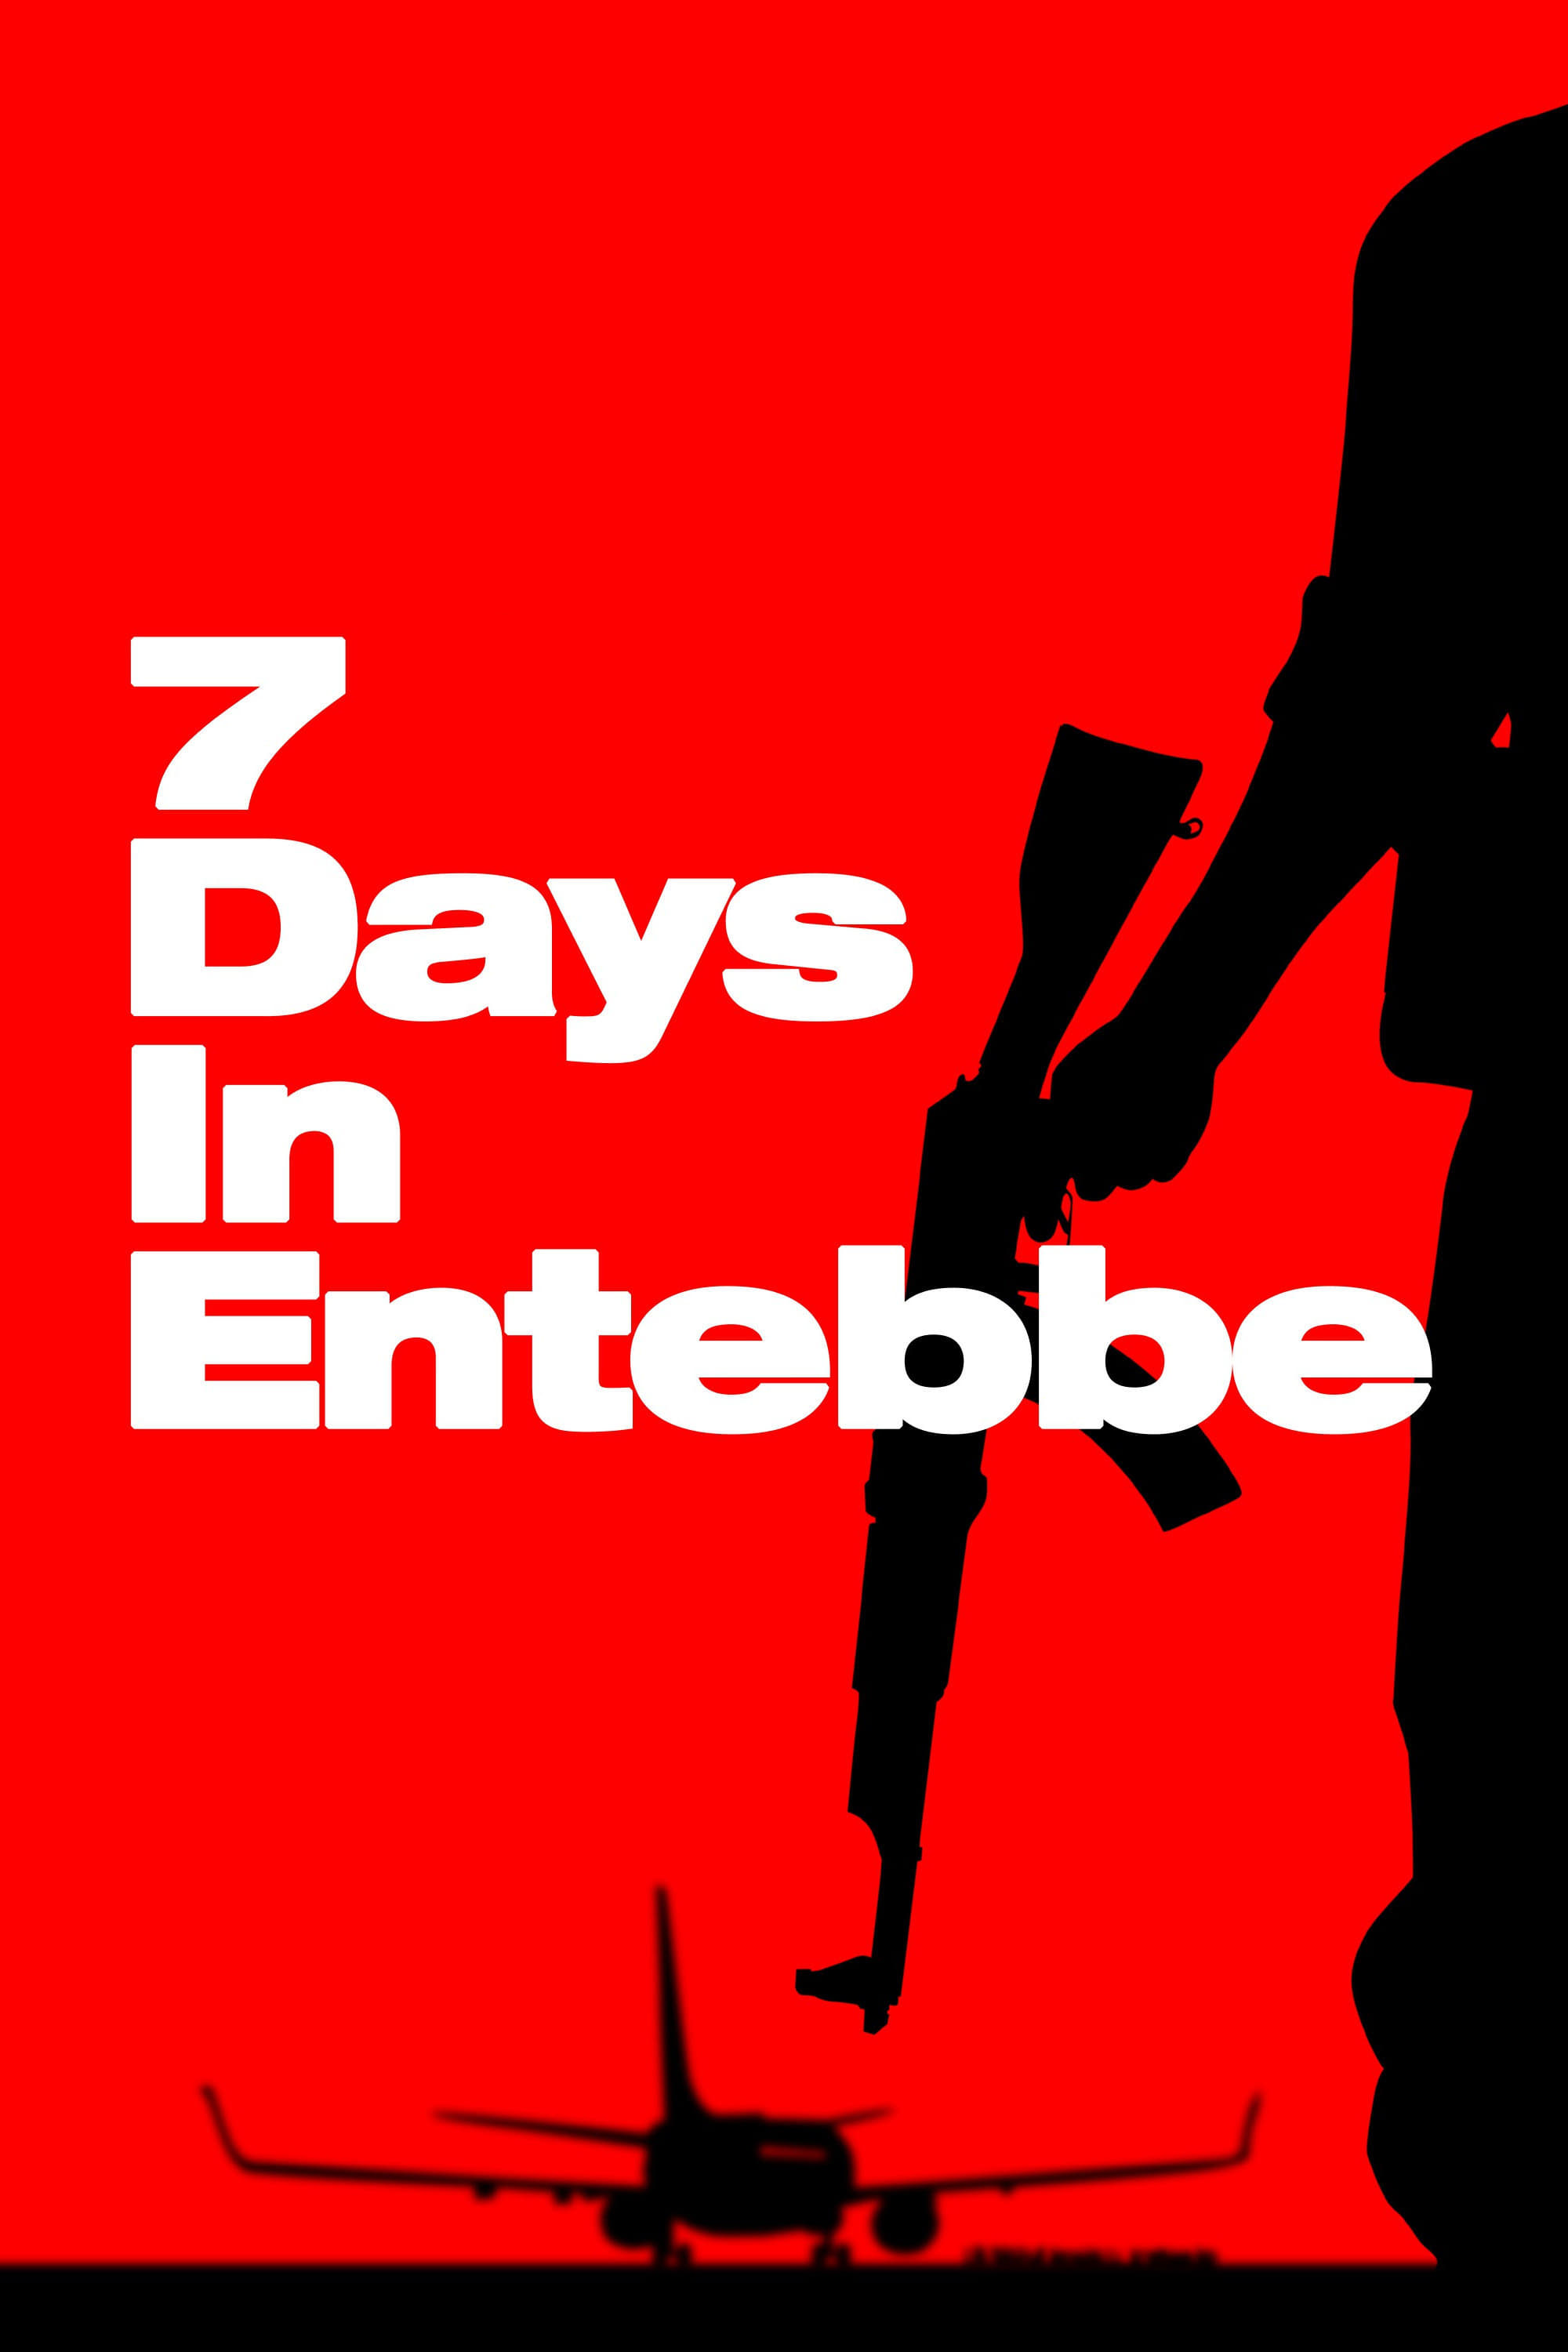 image for 7 Days in Entebbe